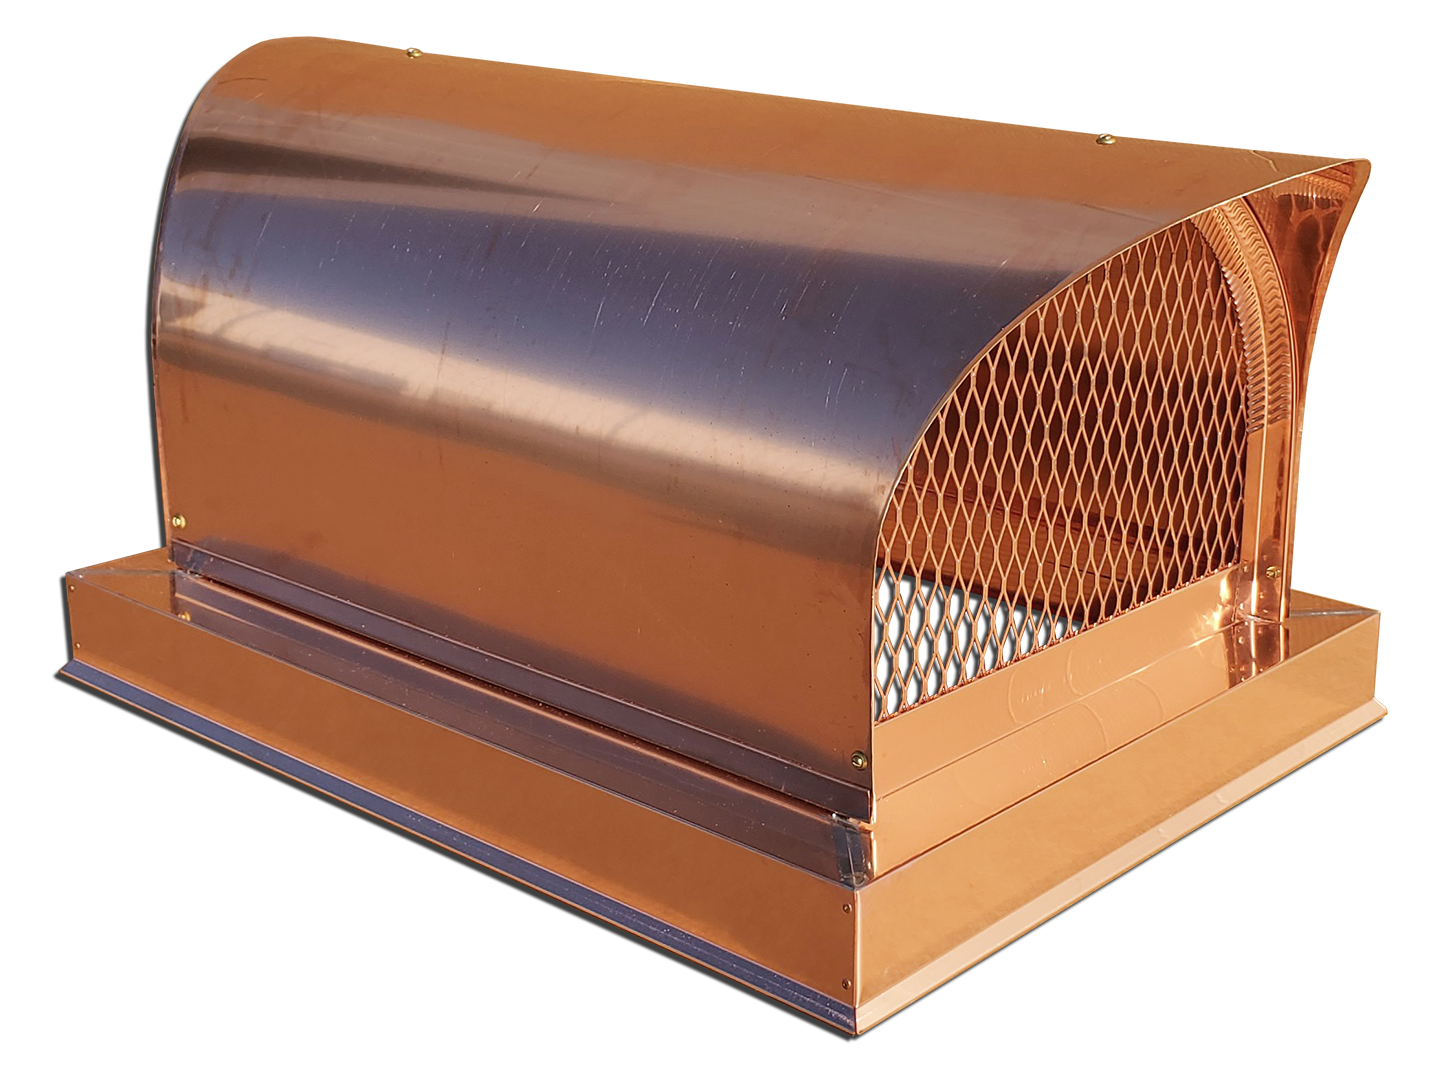 #CC105 - Covered wagon round roof style multi flue copper chimney cap